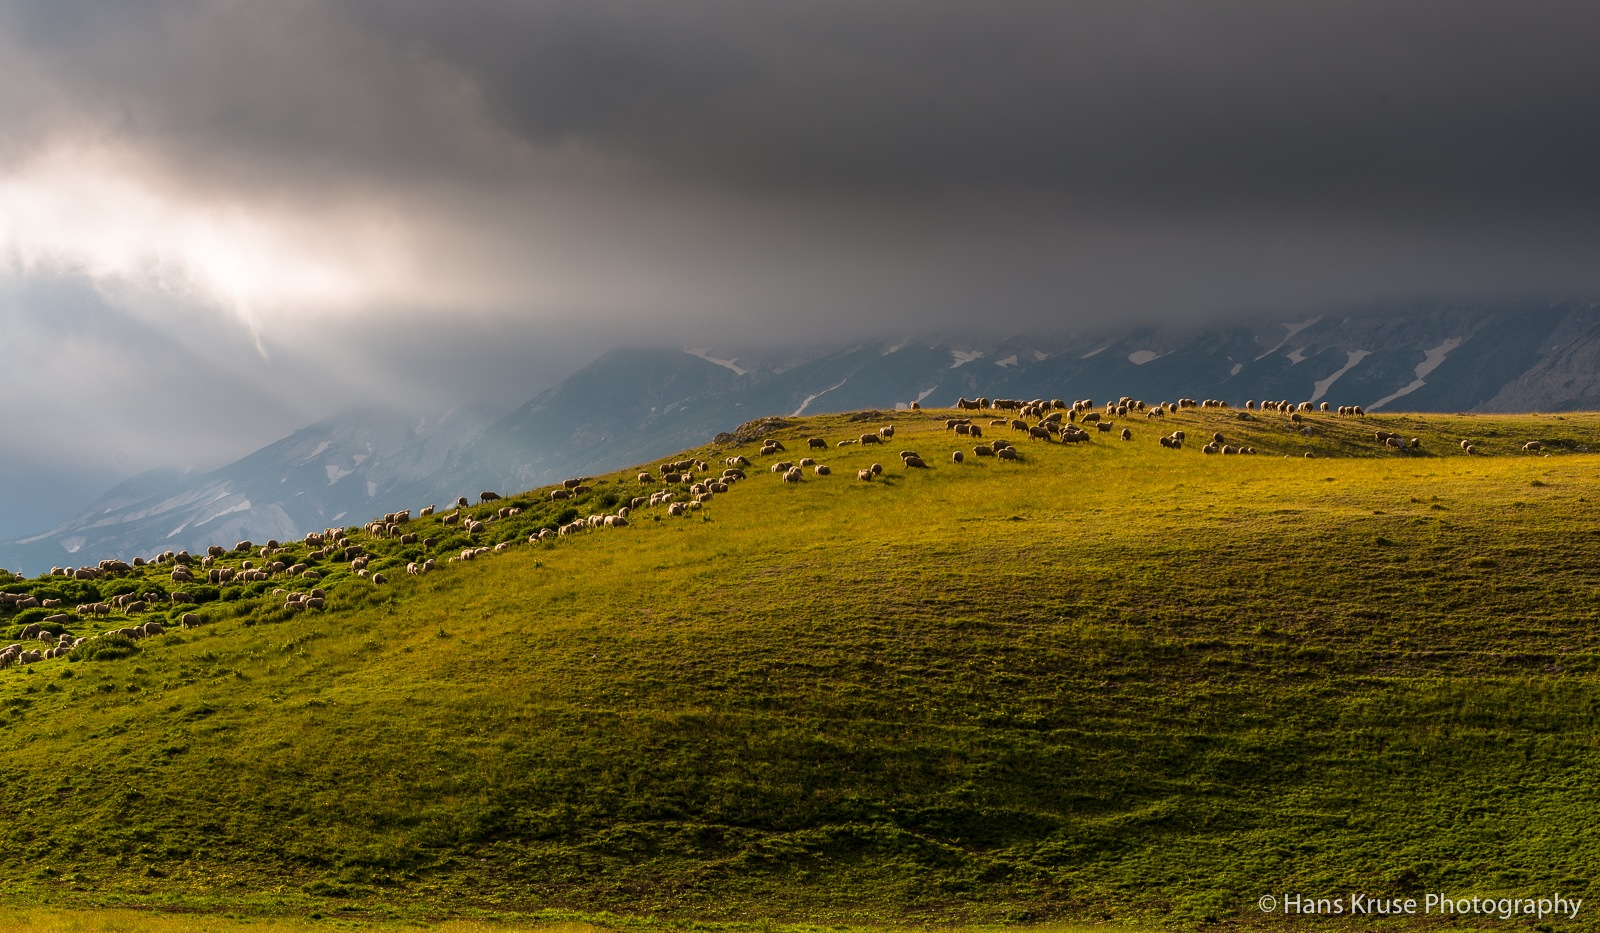 Sheep in the hills by Hans Kruse